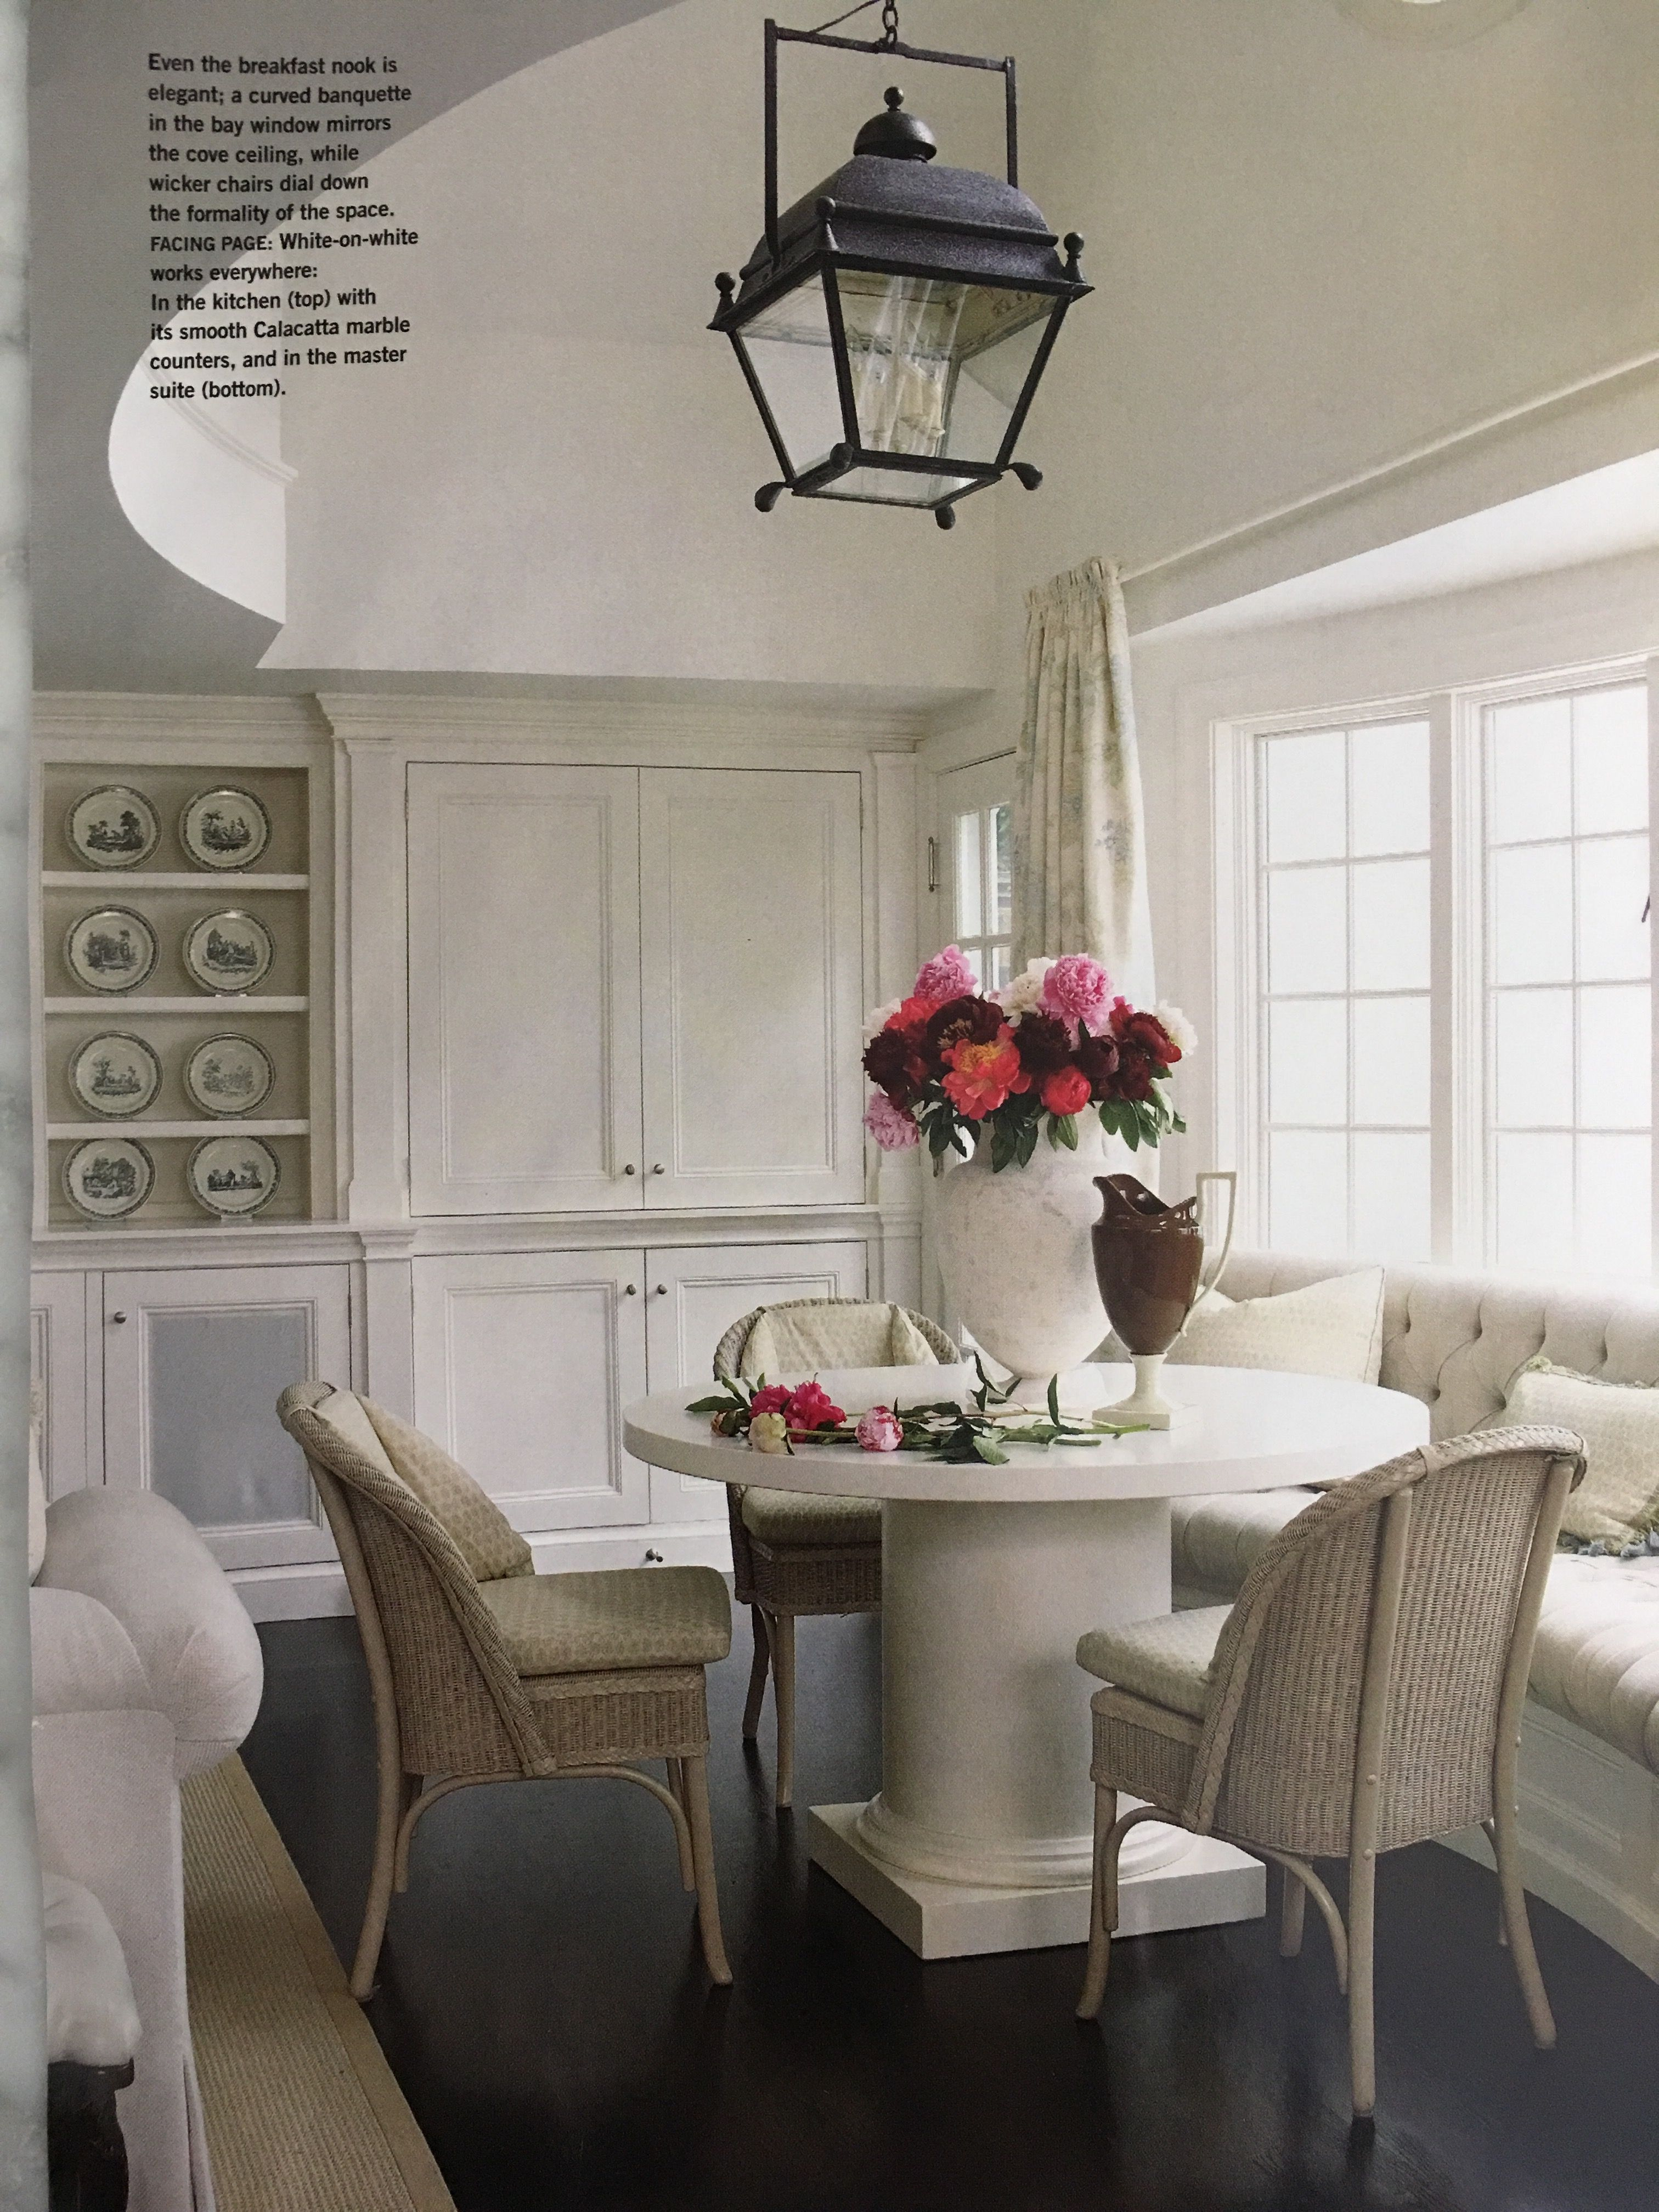 Pin Kate Coughlin Interiors On Dining Room Pinterest Room Jpg 3024x4032  Banquette White Curves